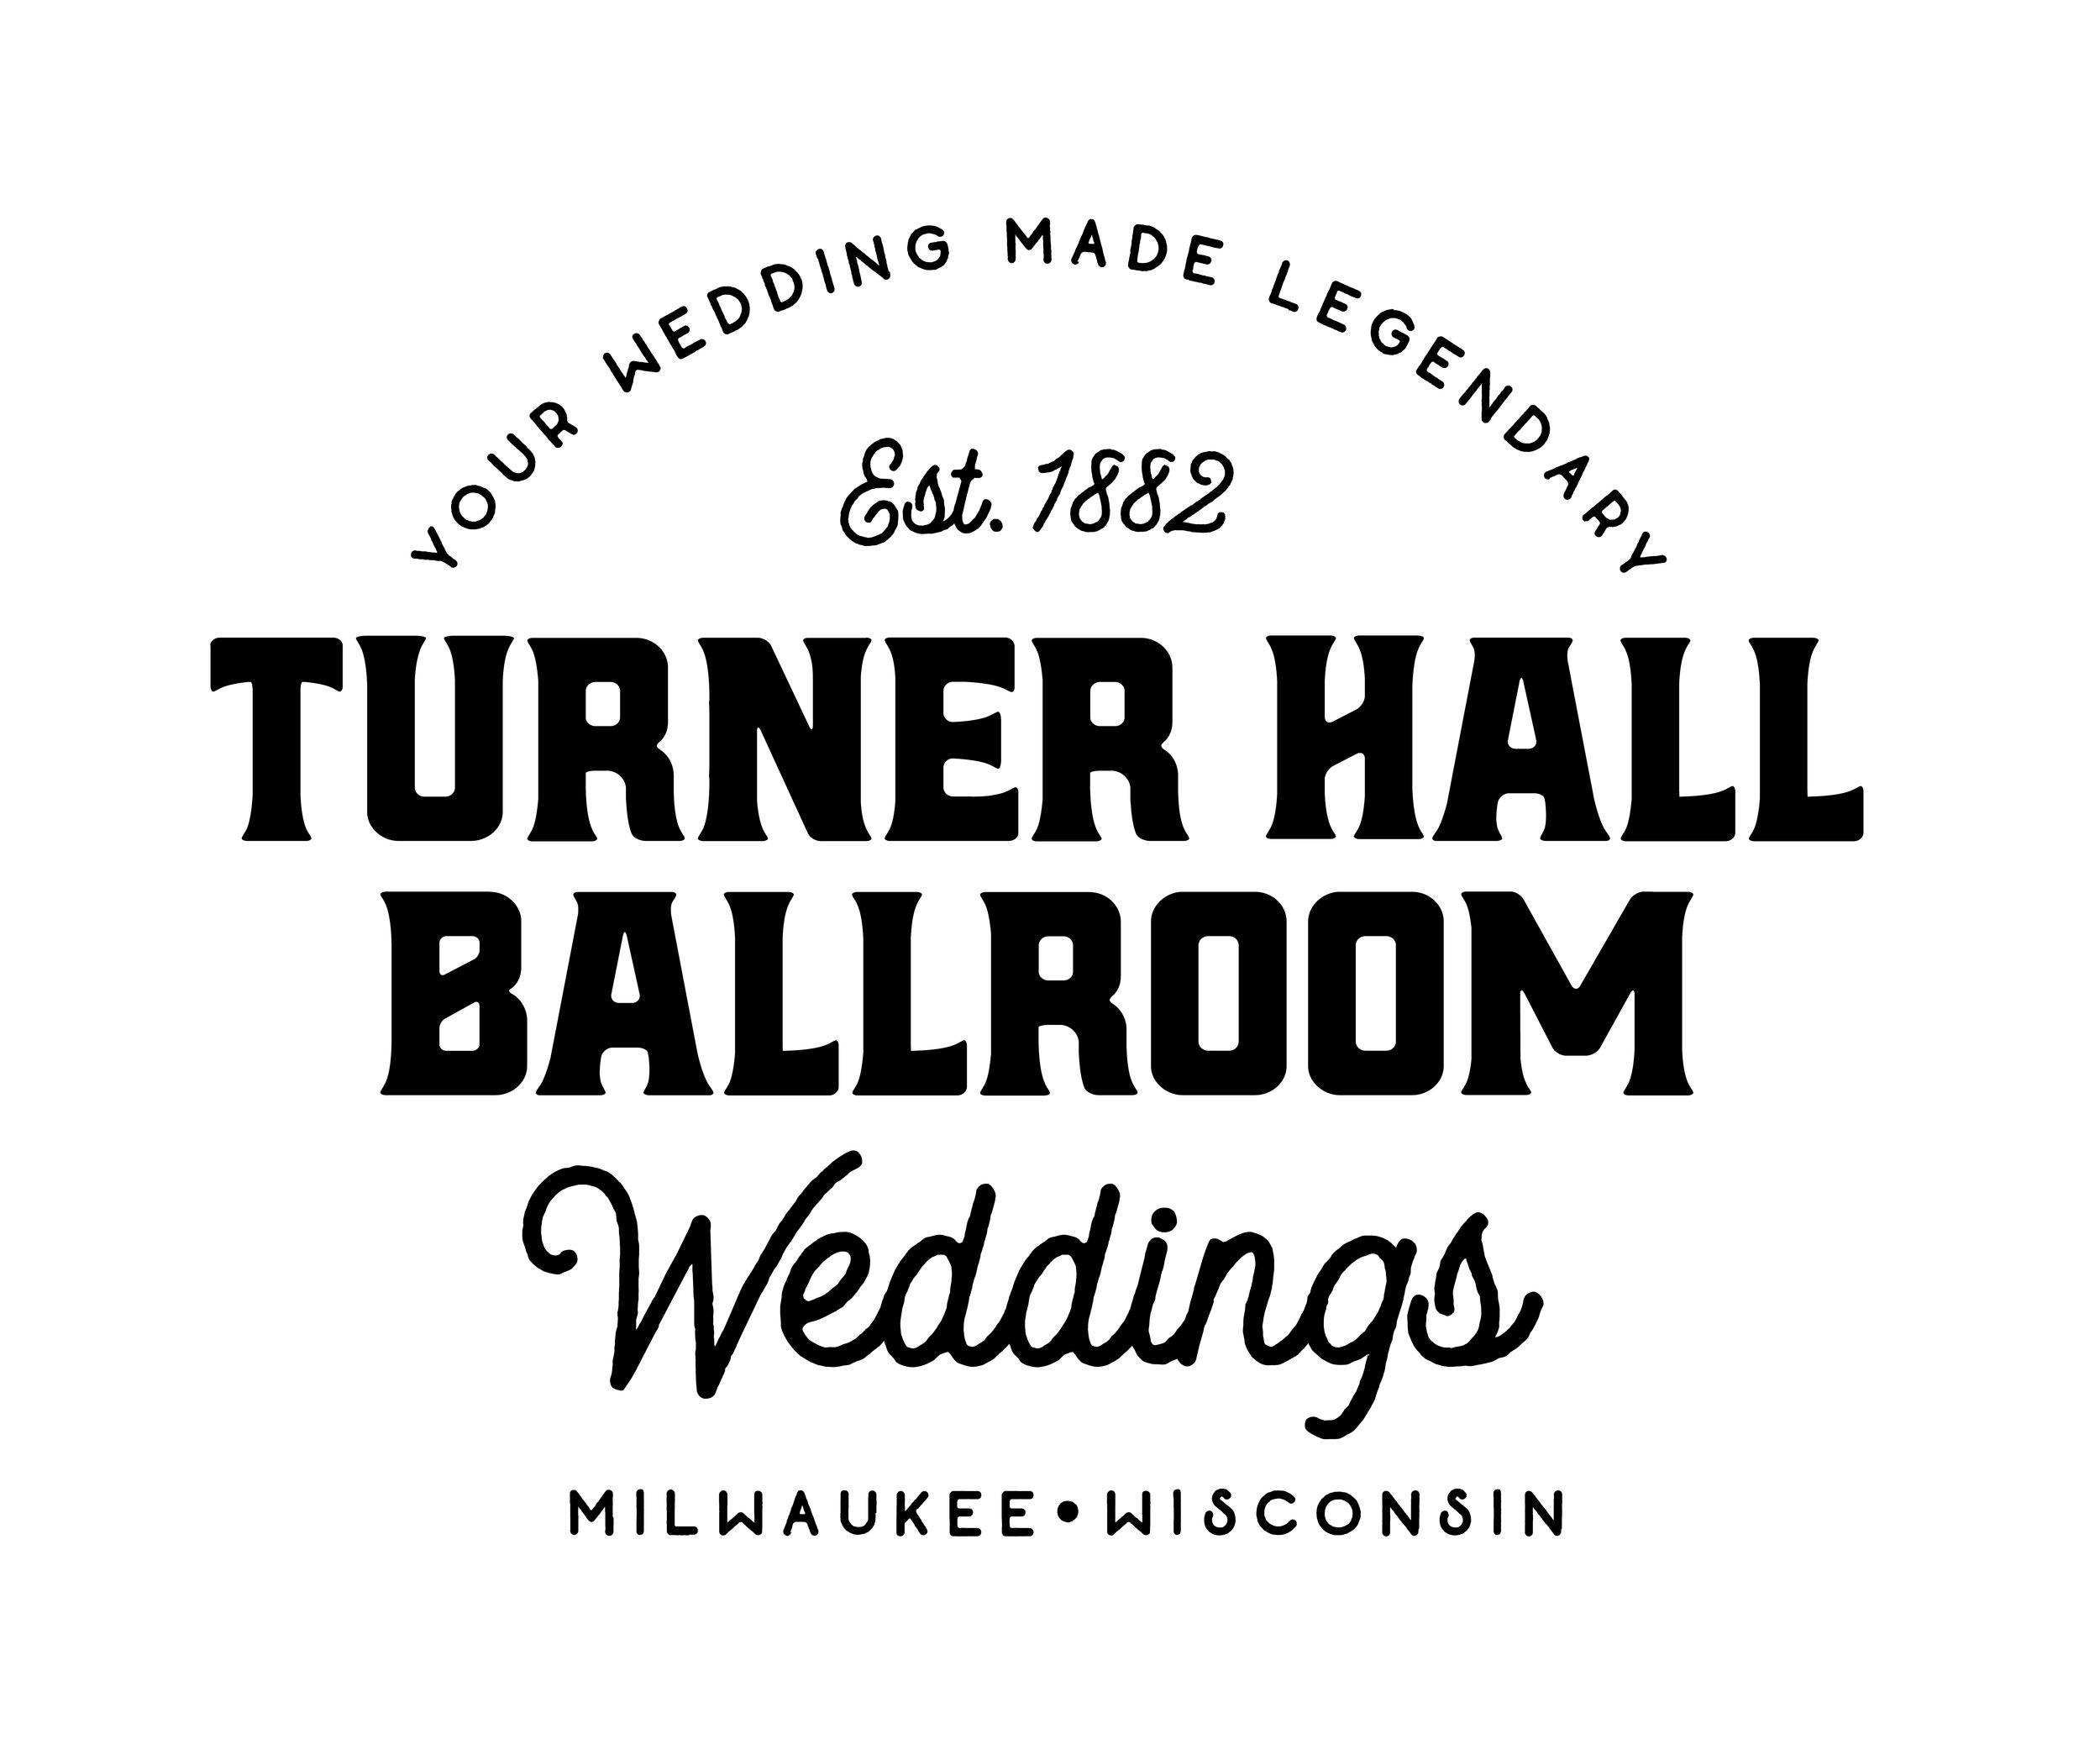 Turner-Hall-Ballroom-Weddings-logo-full.jpg